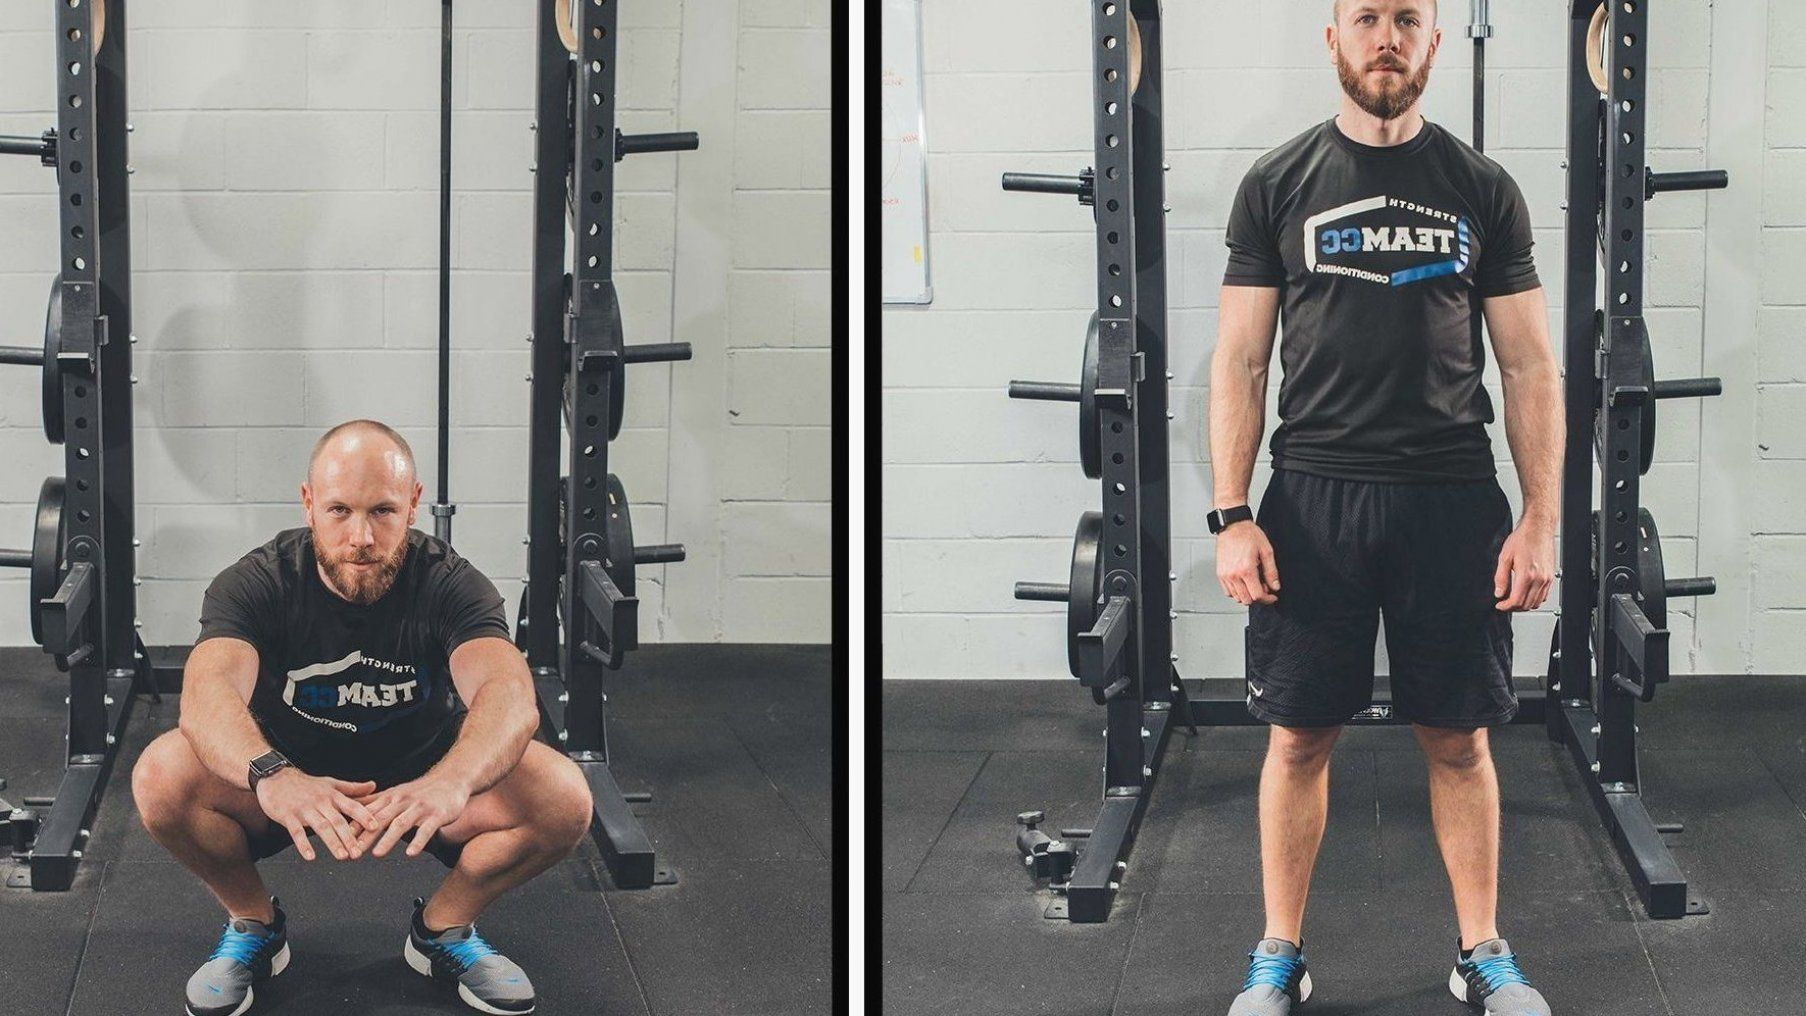 How to get stronger for beginners: strength training isn't just for jocks | T3